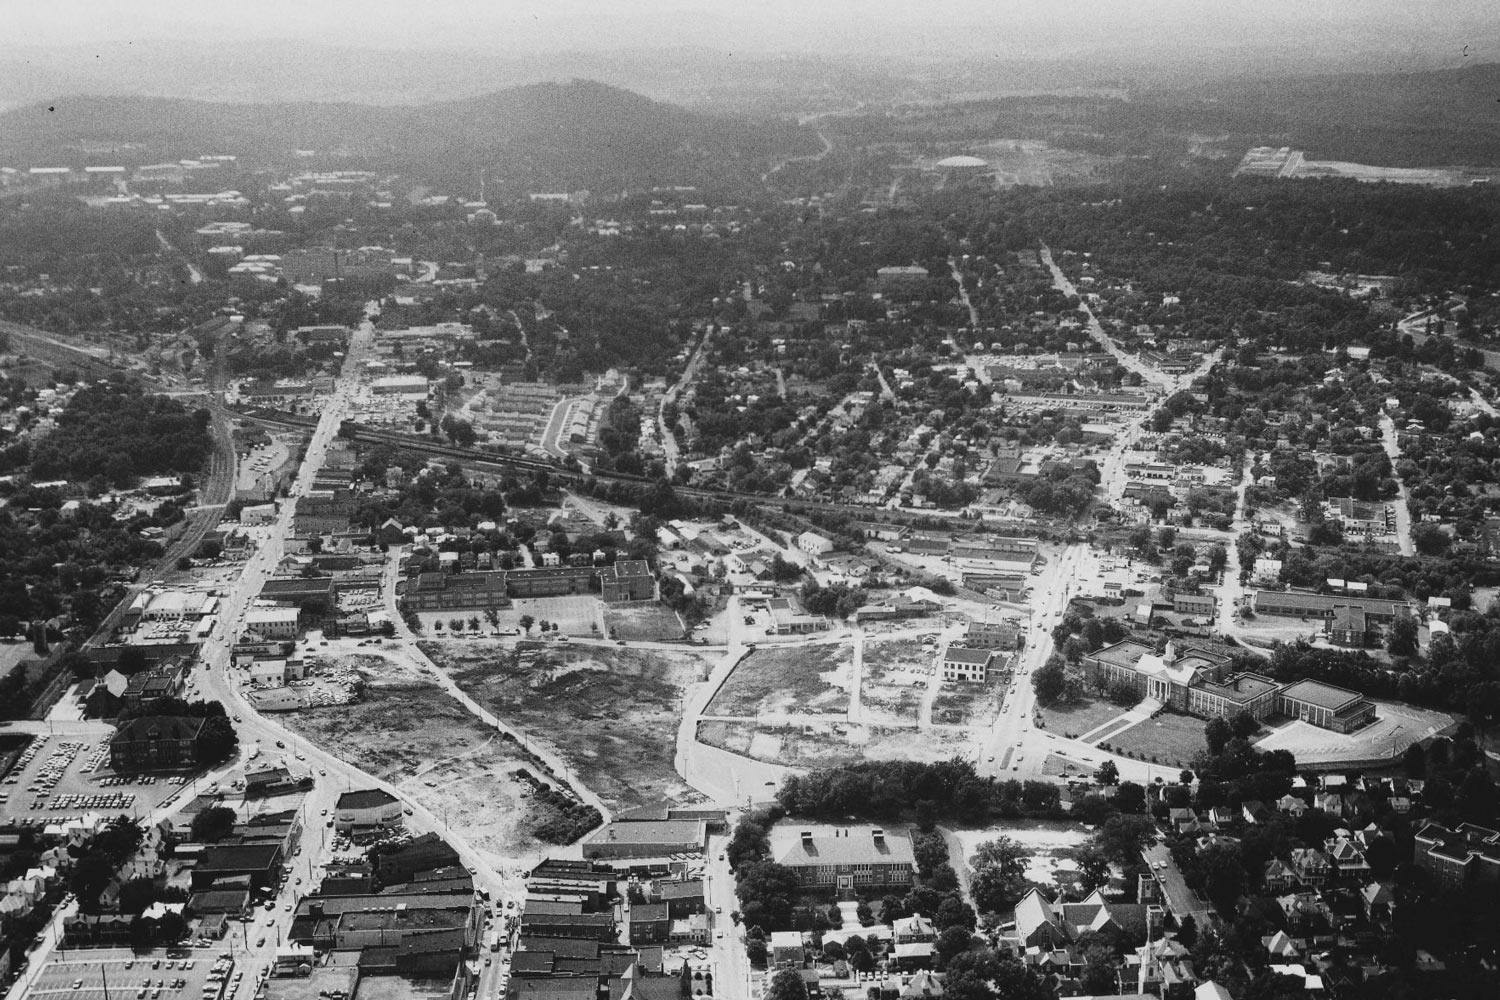 The African-American business district known as Vinegar Hill was demolished in the early '60s under urban renewal.